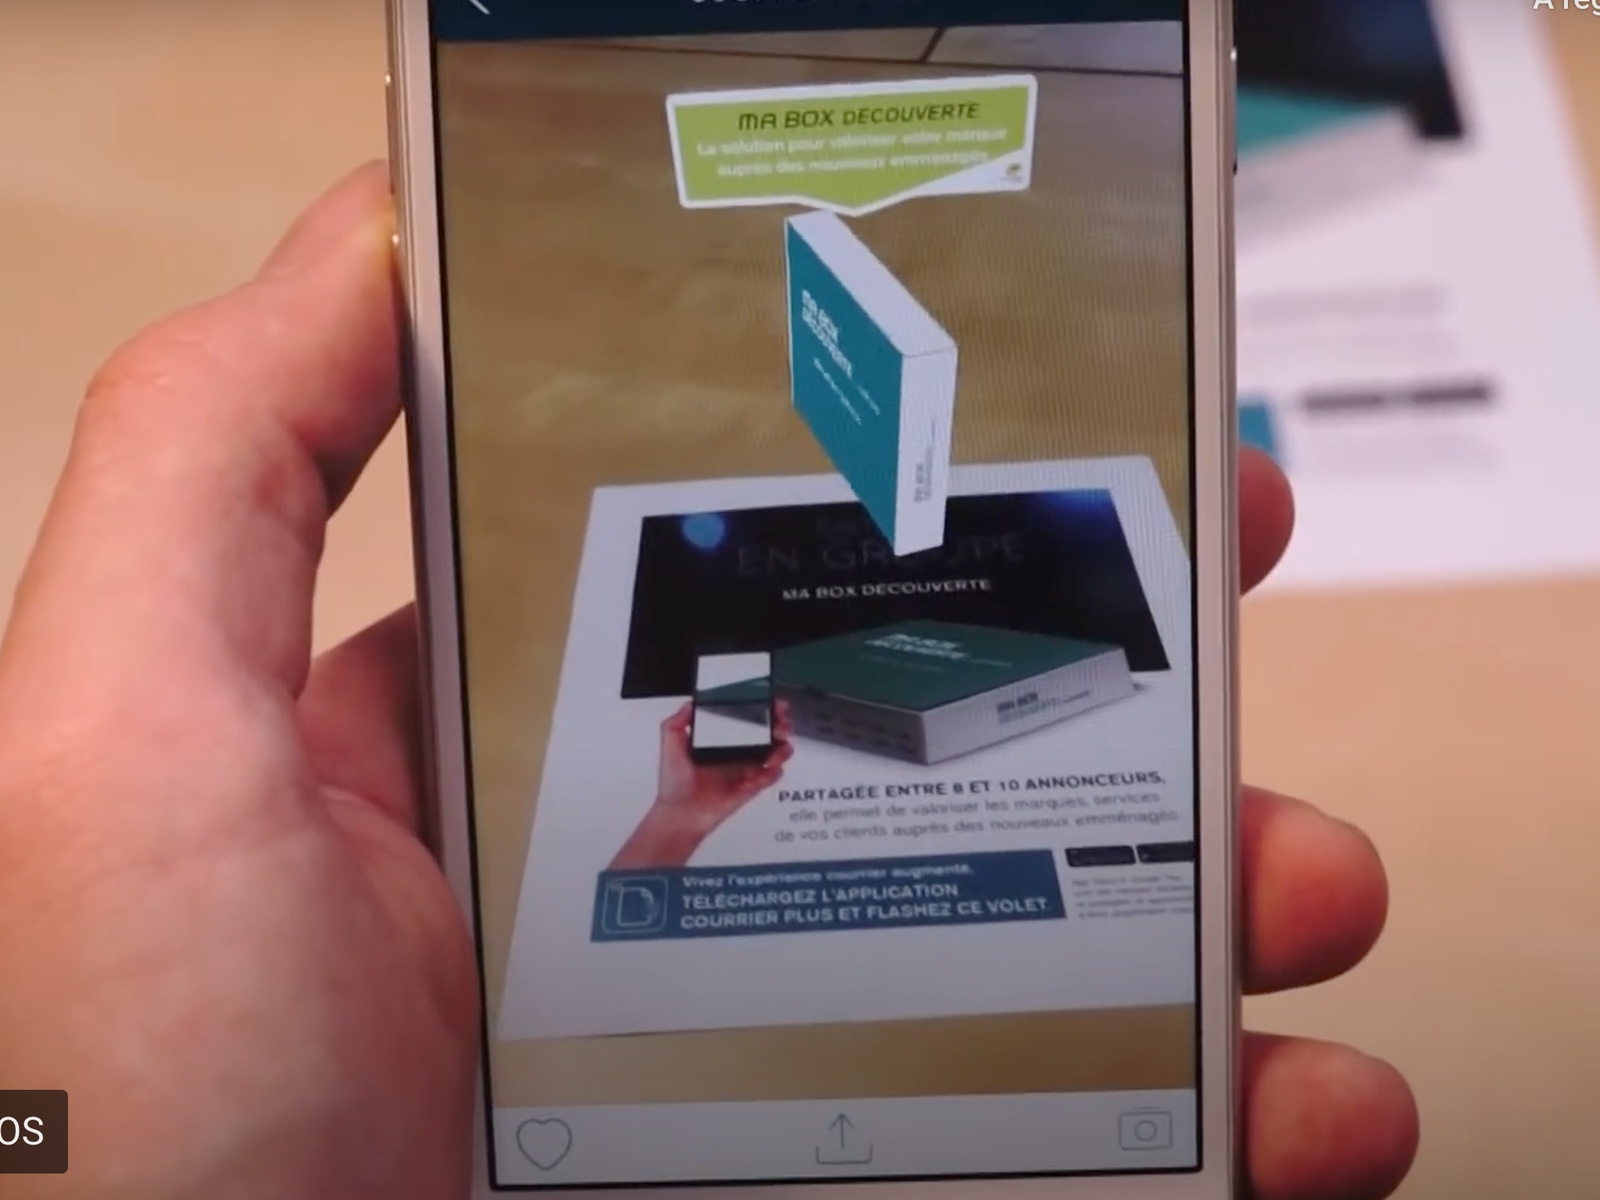 ARGOplay ex-SnapPress the native augmented reality solution for retail, commerce and consumer goods, available free of charge to end-users on iOS and Android smartphones, preview of a smartphone display